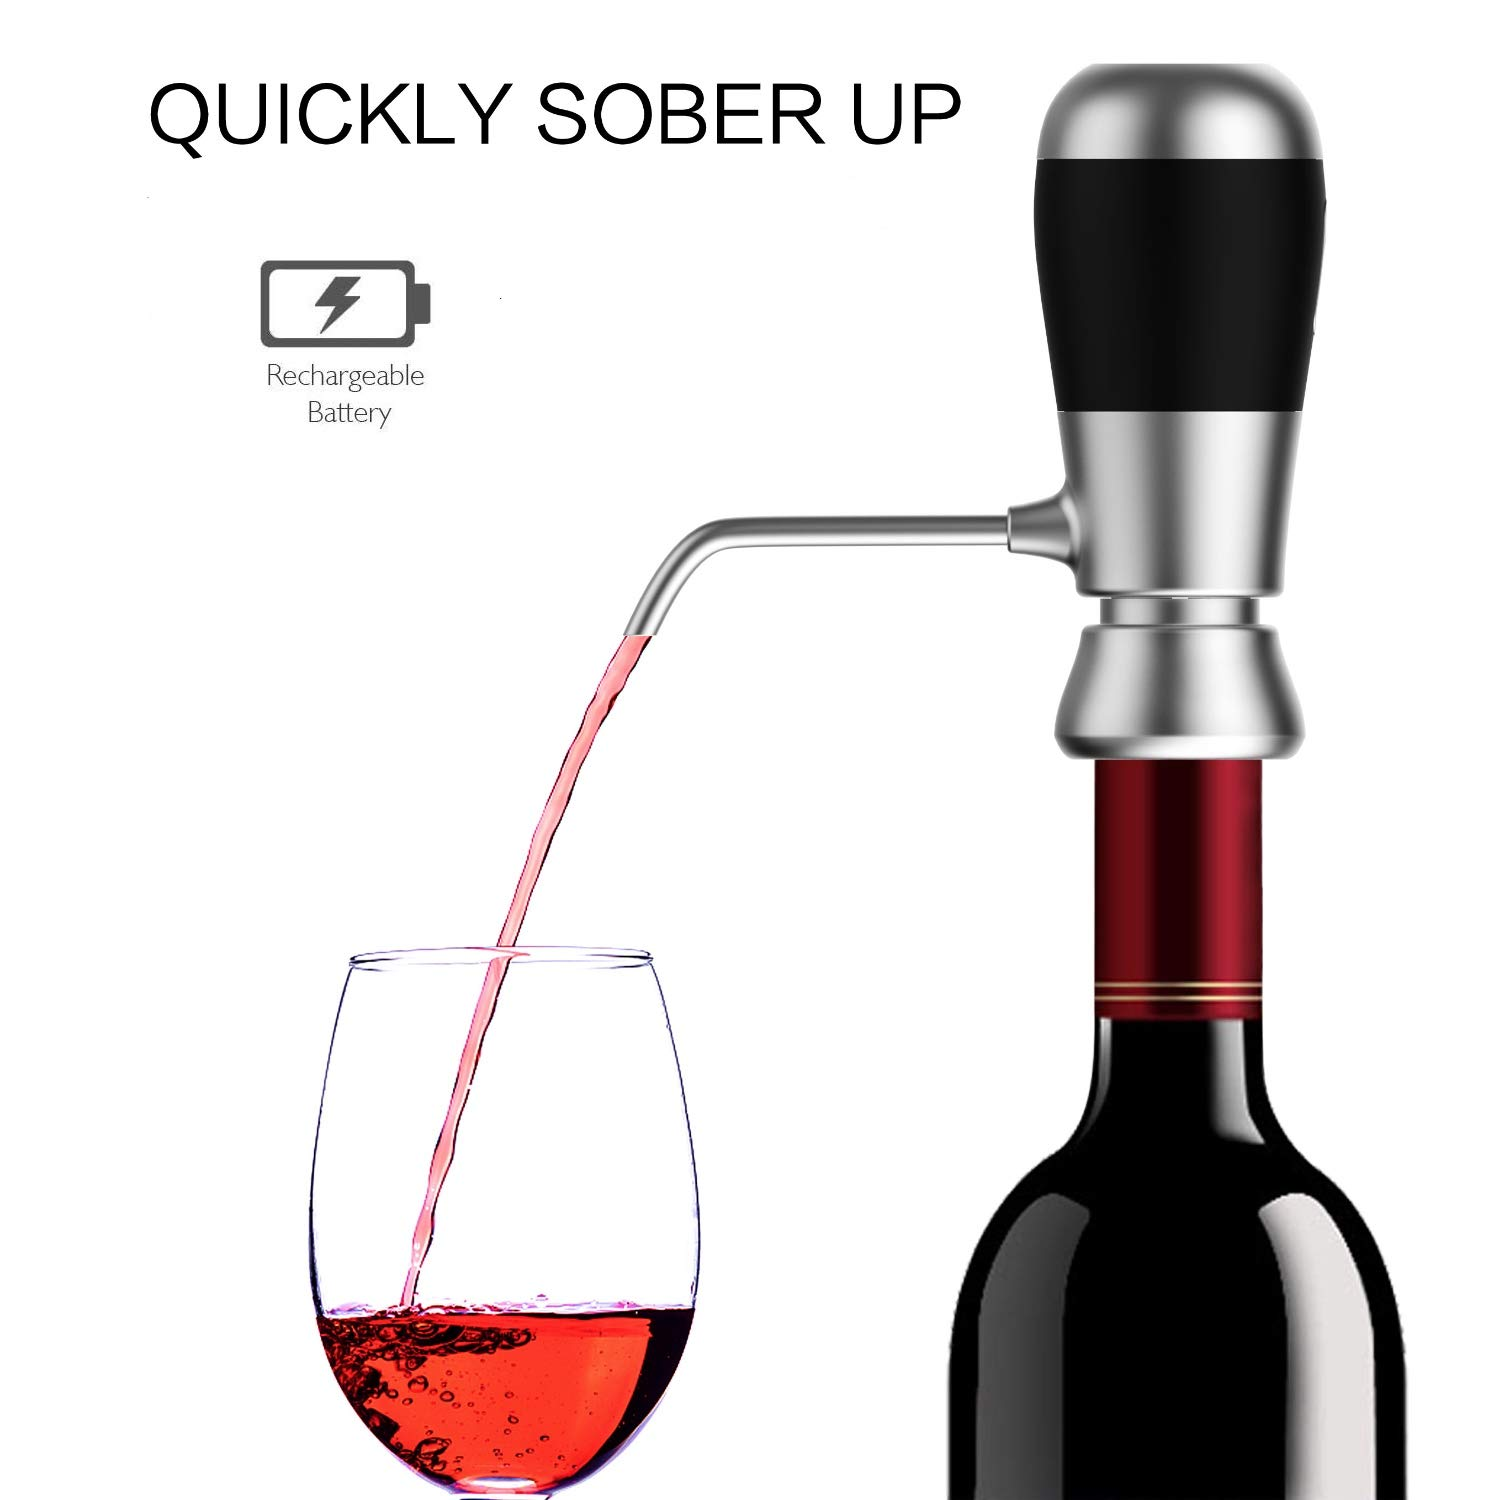 LOVHO Instant 1-Button Electric Wine Aerator - Rechargeable Battery - Black by LOVHO (Image #1)